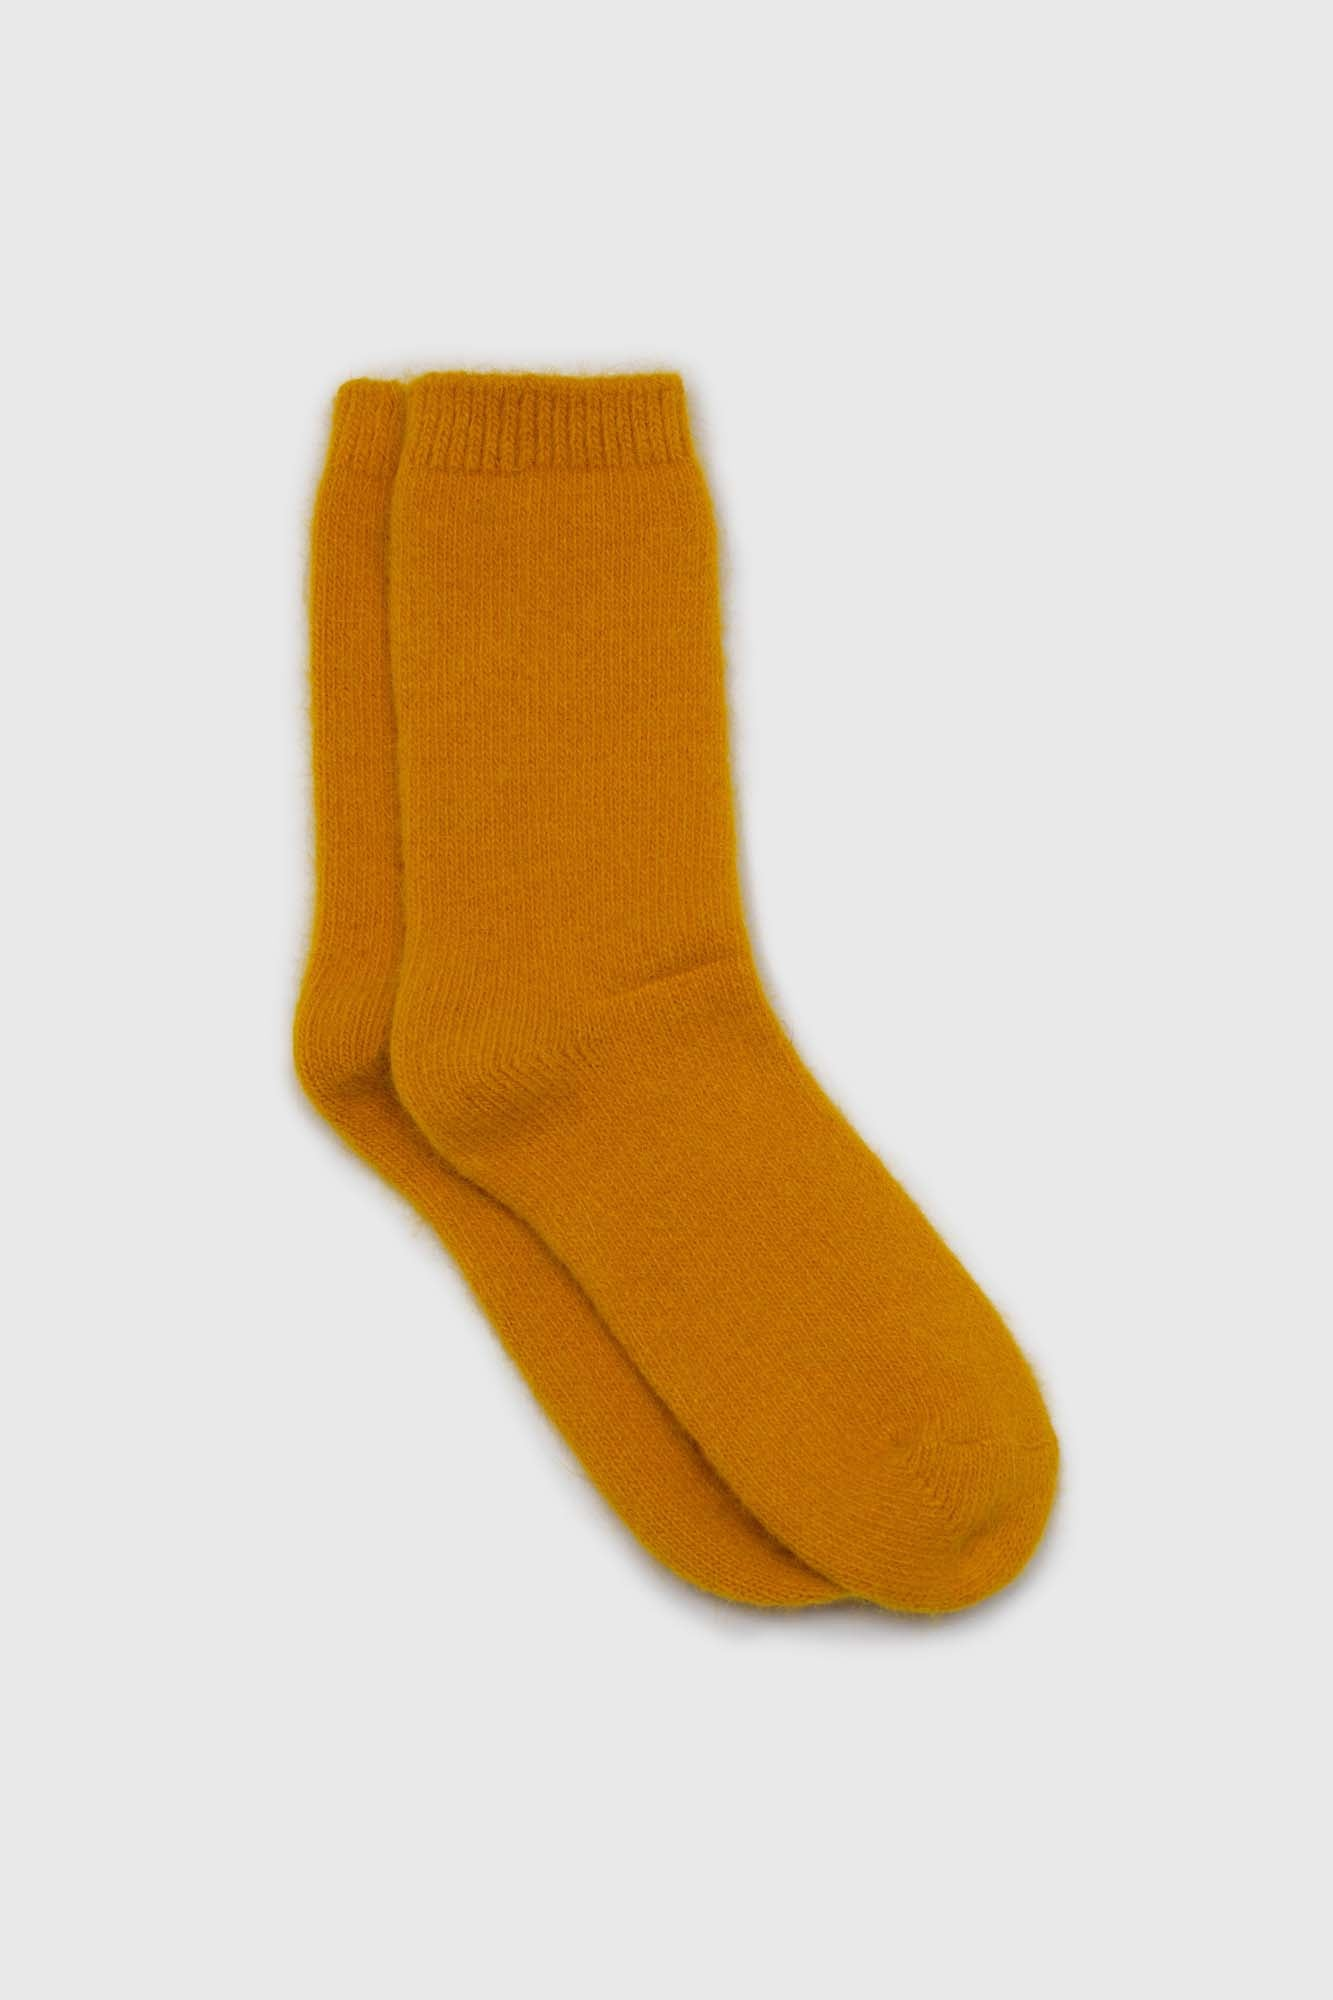 Mustard angora smooth socks1sx